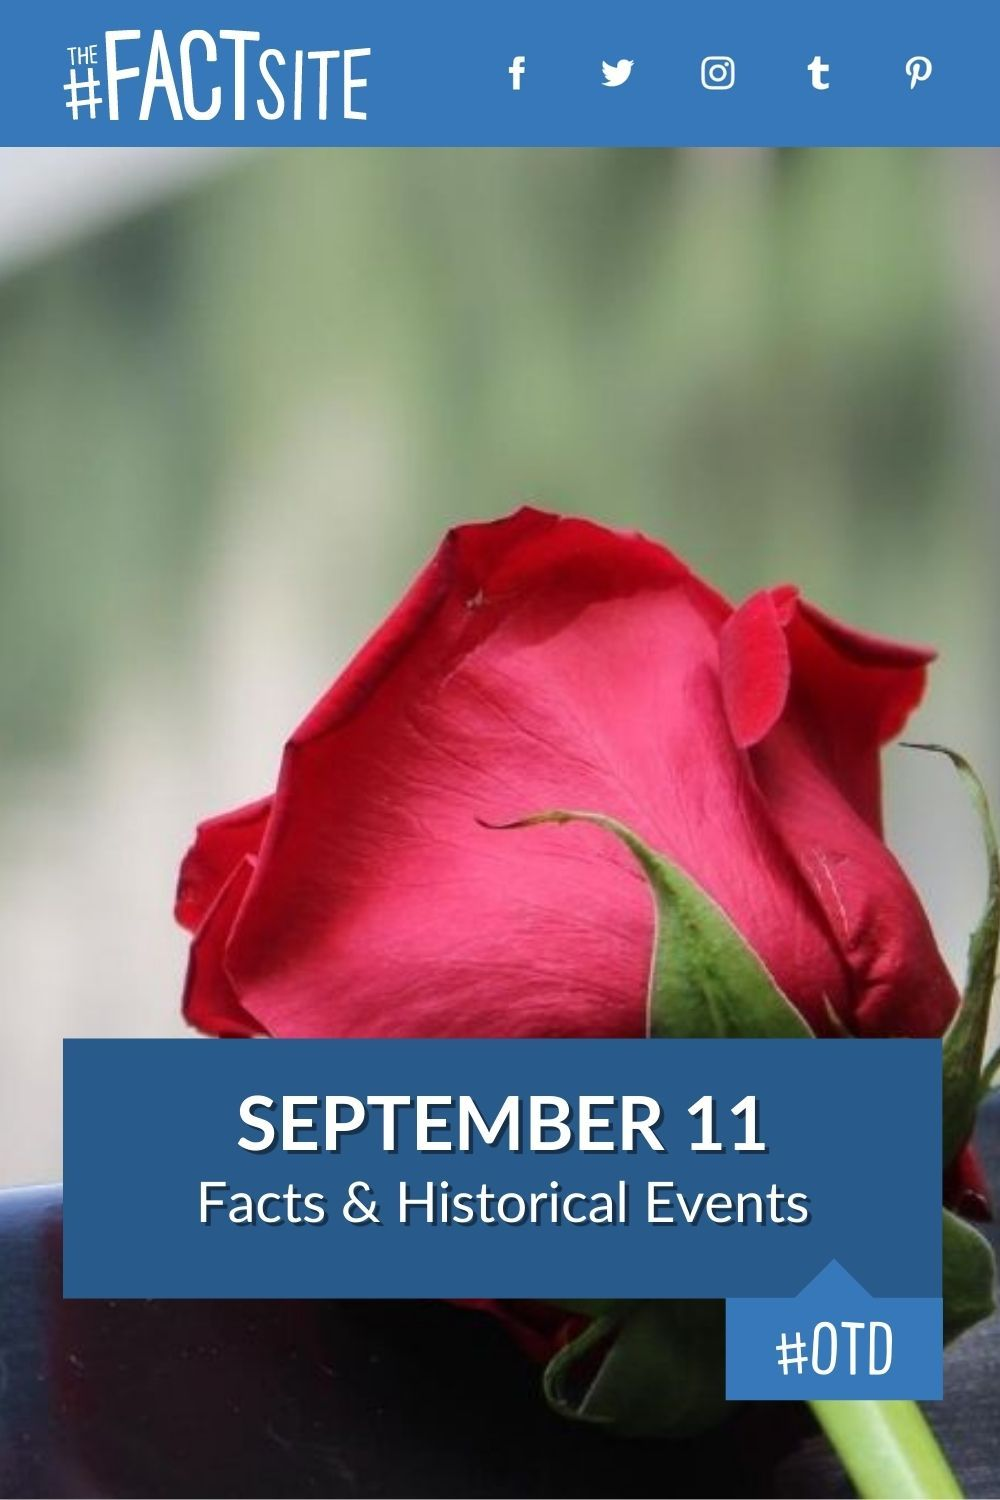 Facts & Historic Events That Happened on September 11